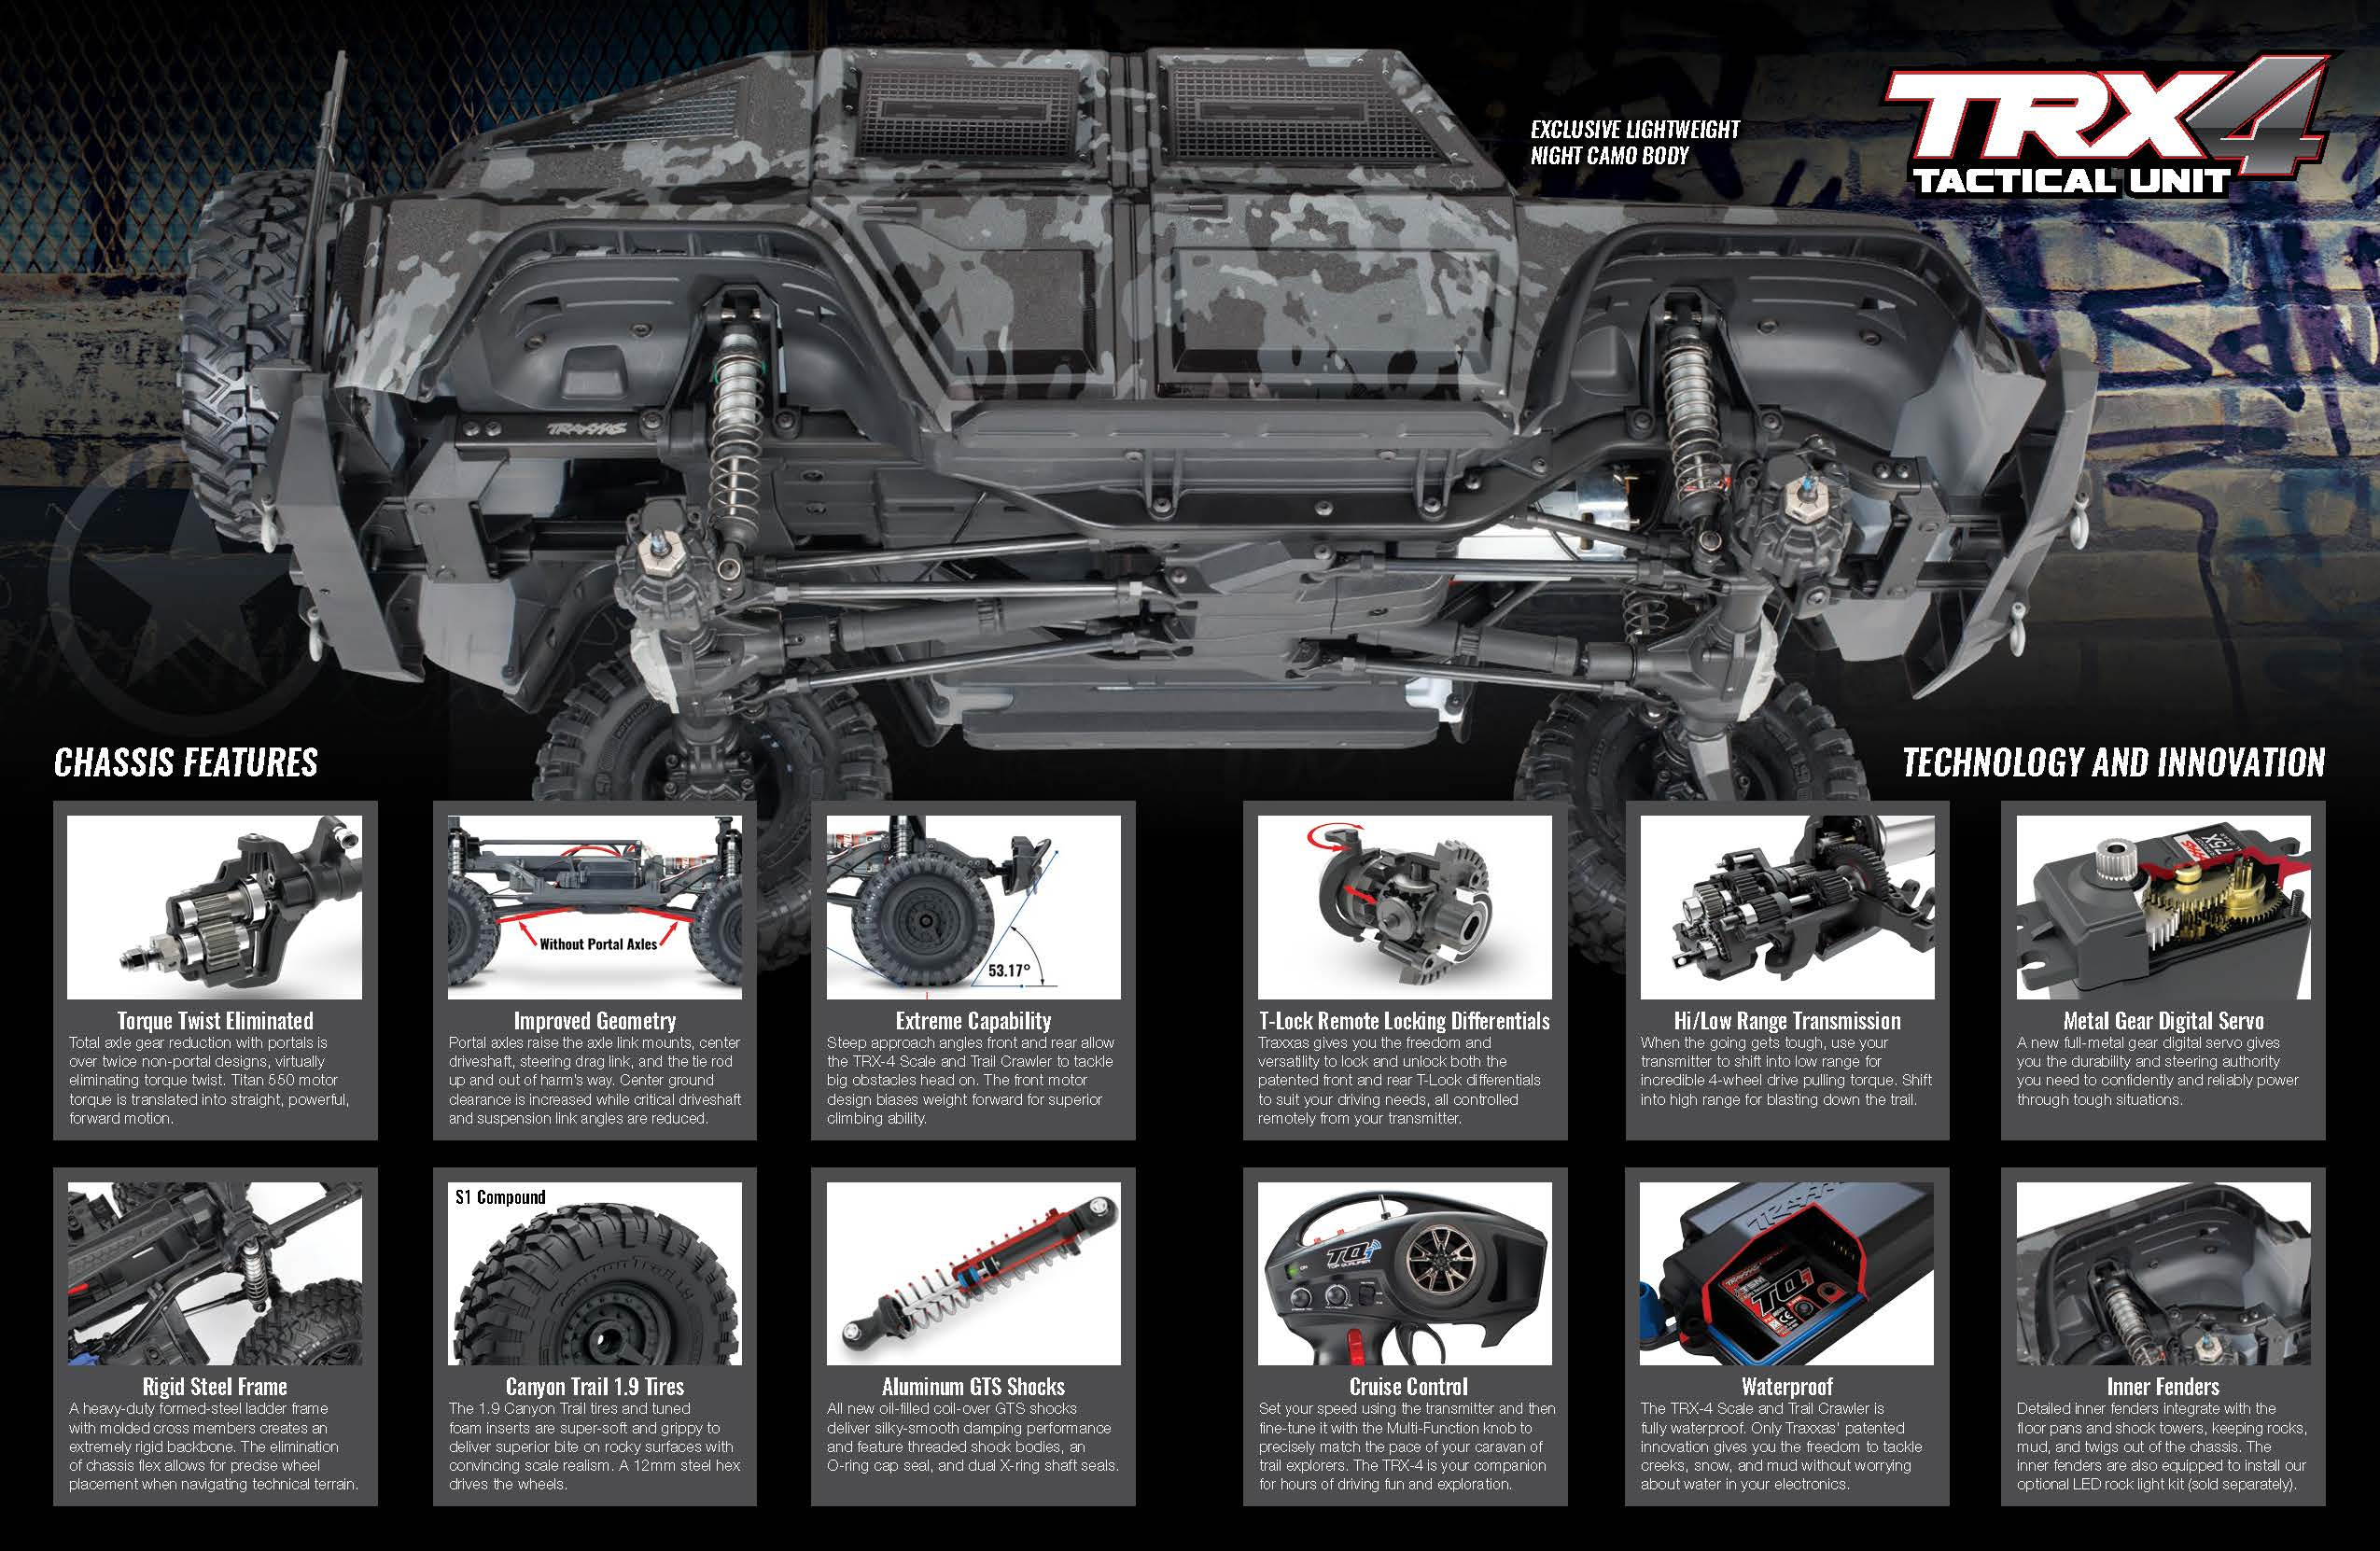 Traxxas Tactical Unit - Everything We Know So Far - RC Car